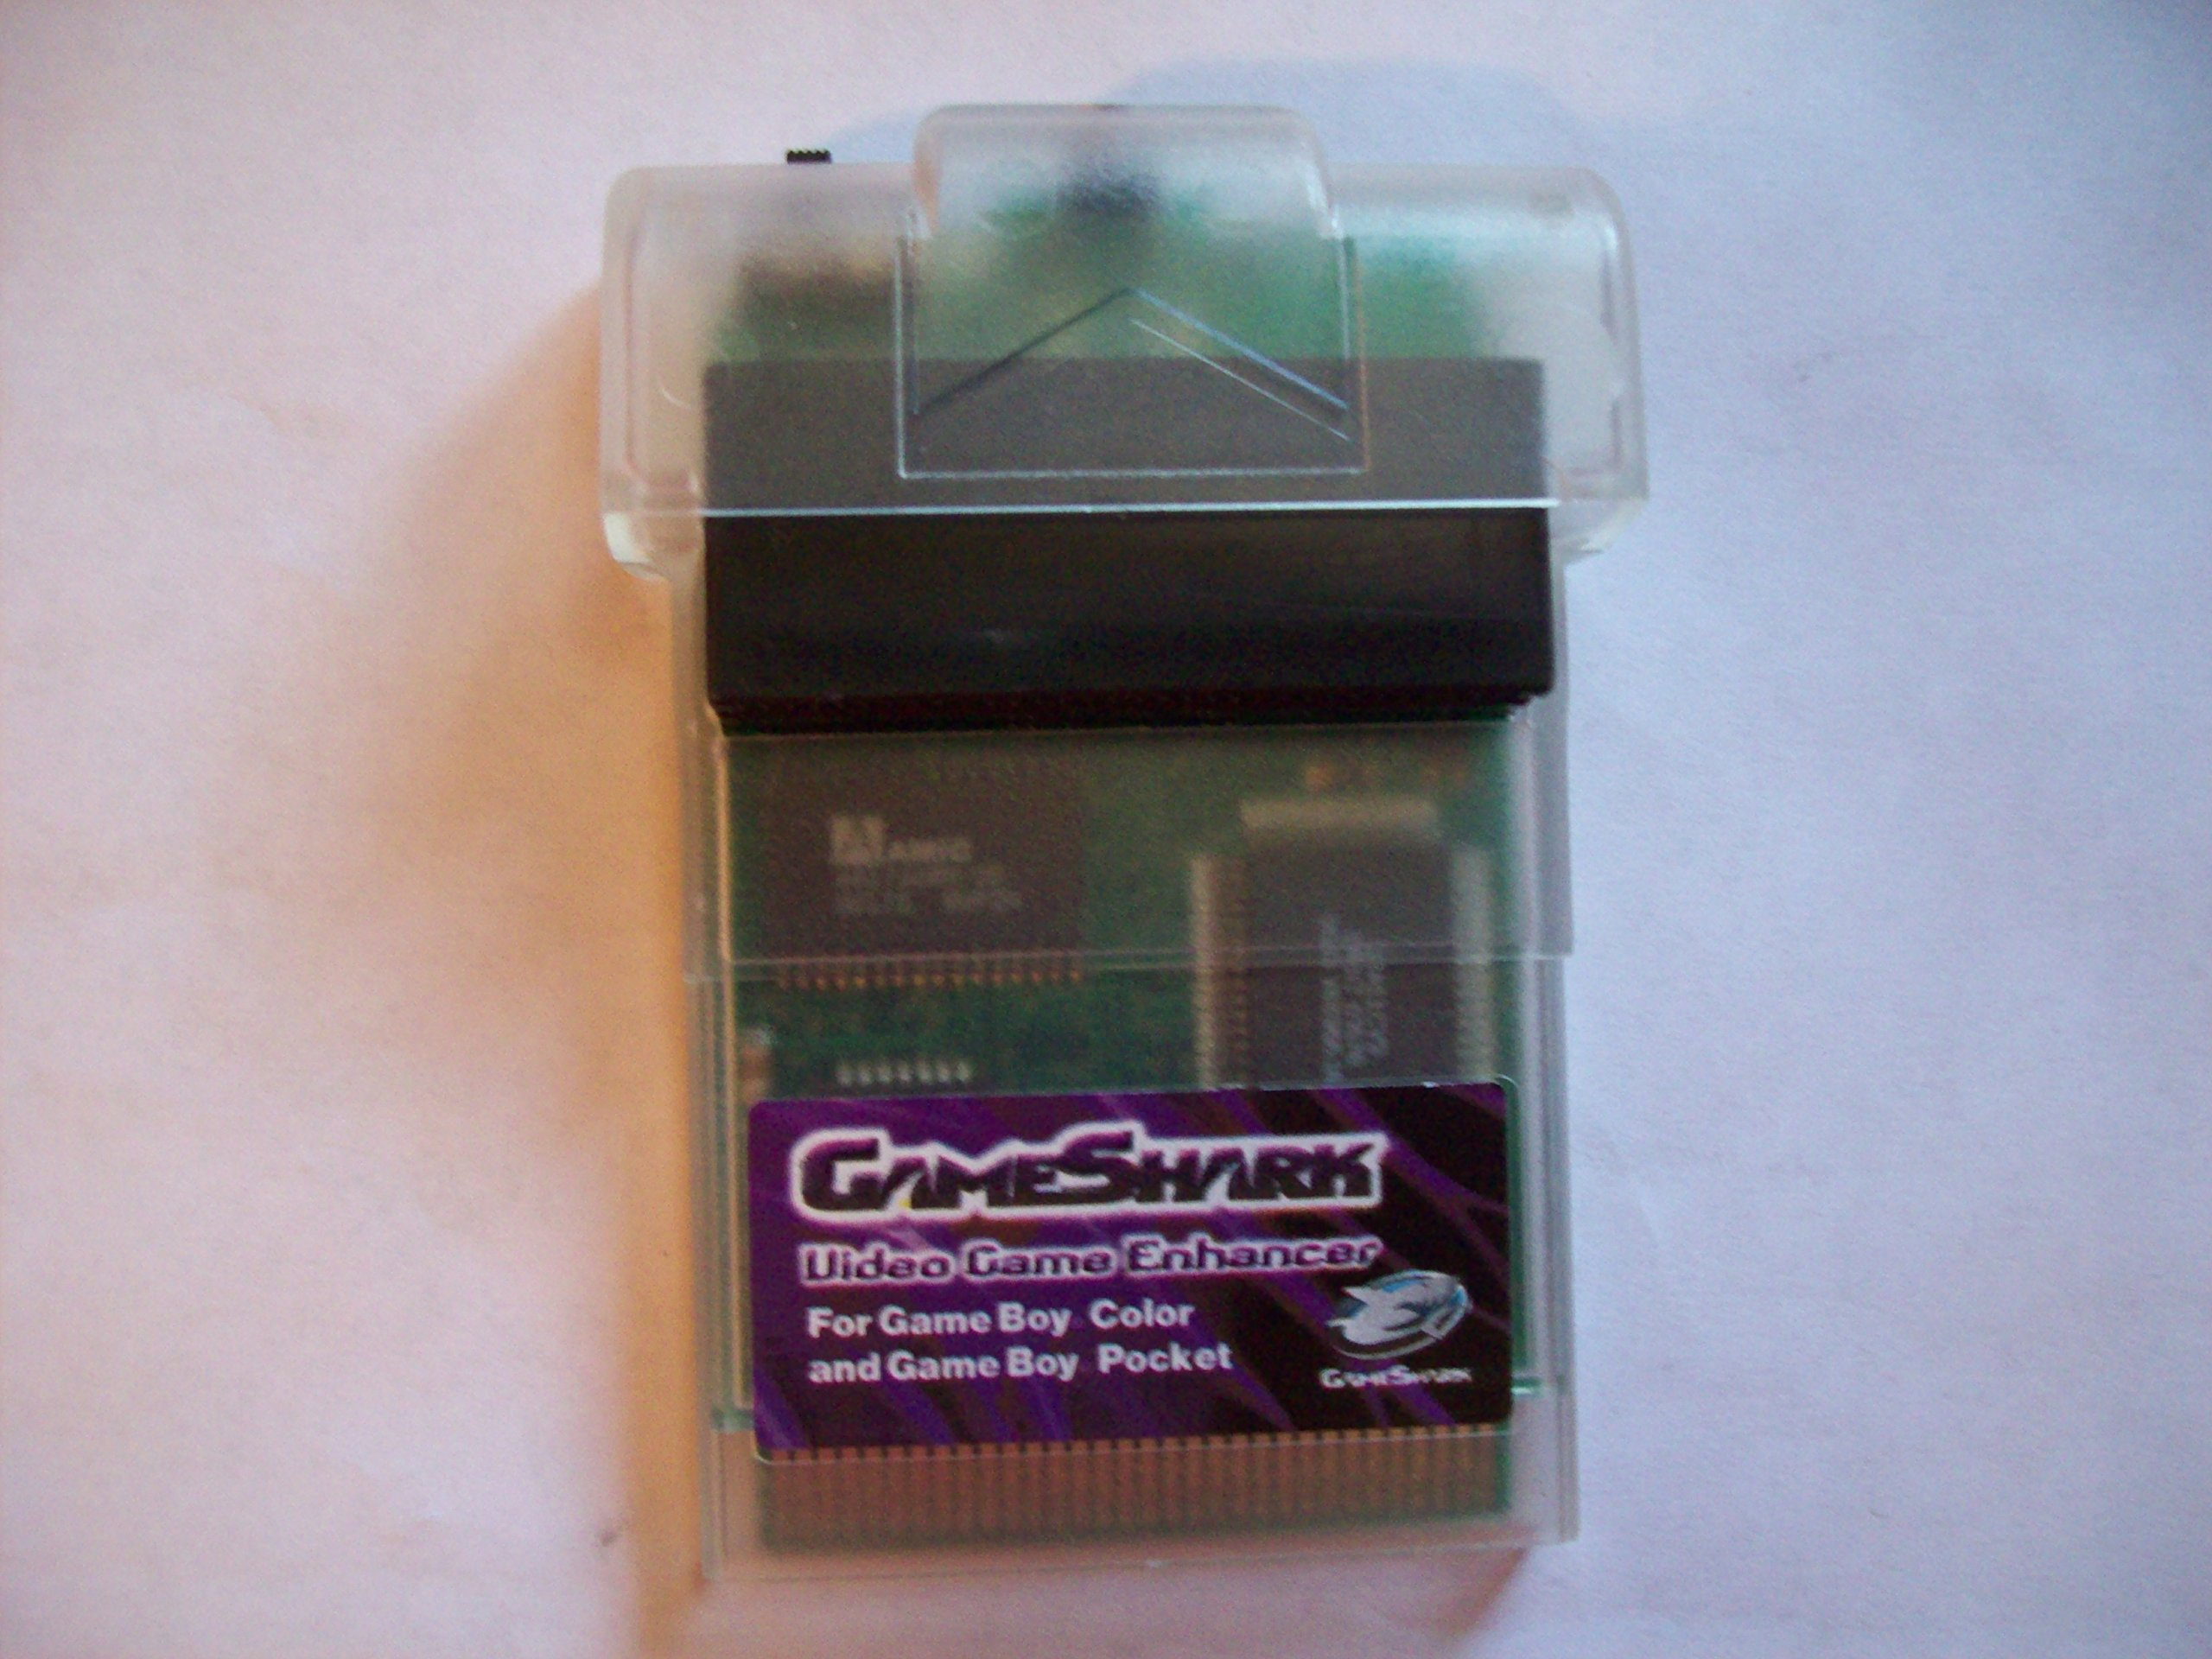 Game boy color kaufen - Gameshark For Game Boy Color Game Boy Pocket